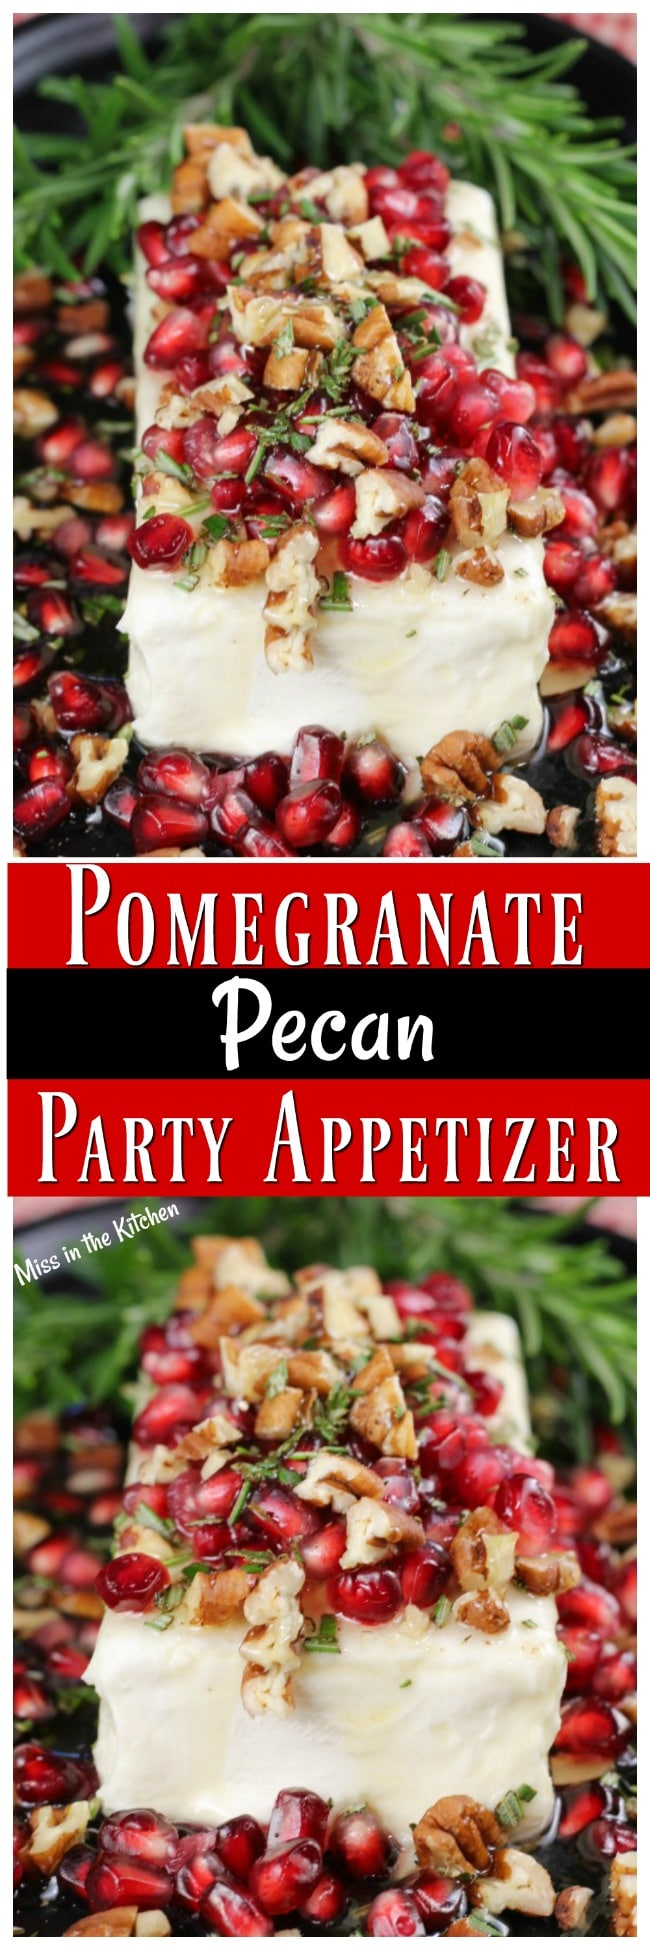 Pomegranate Pecan Party Appetizer Recipe from MissintheKitchen ~ Easy 5 minute, 5 ingredient #recipe #holiday #appetizer #Christmas